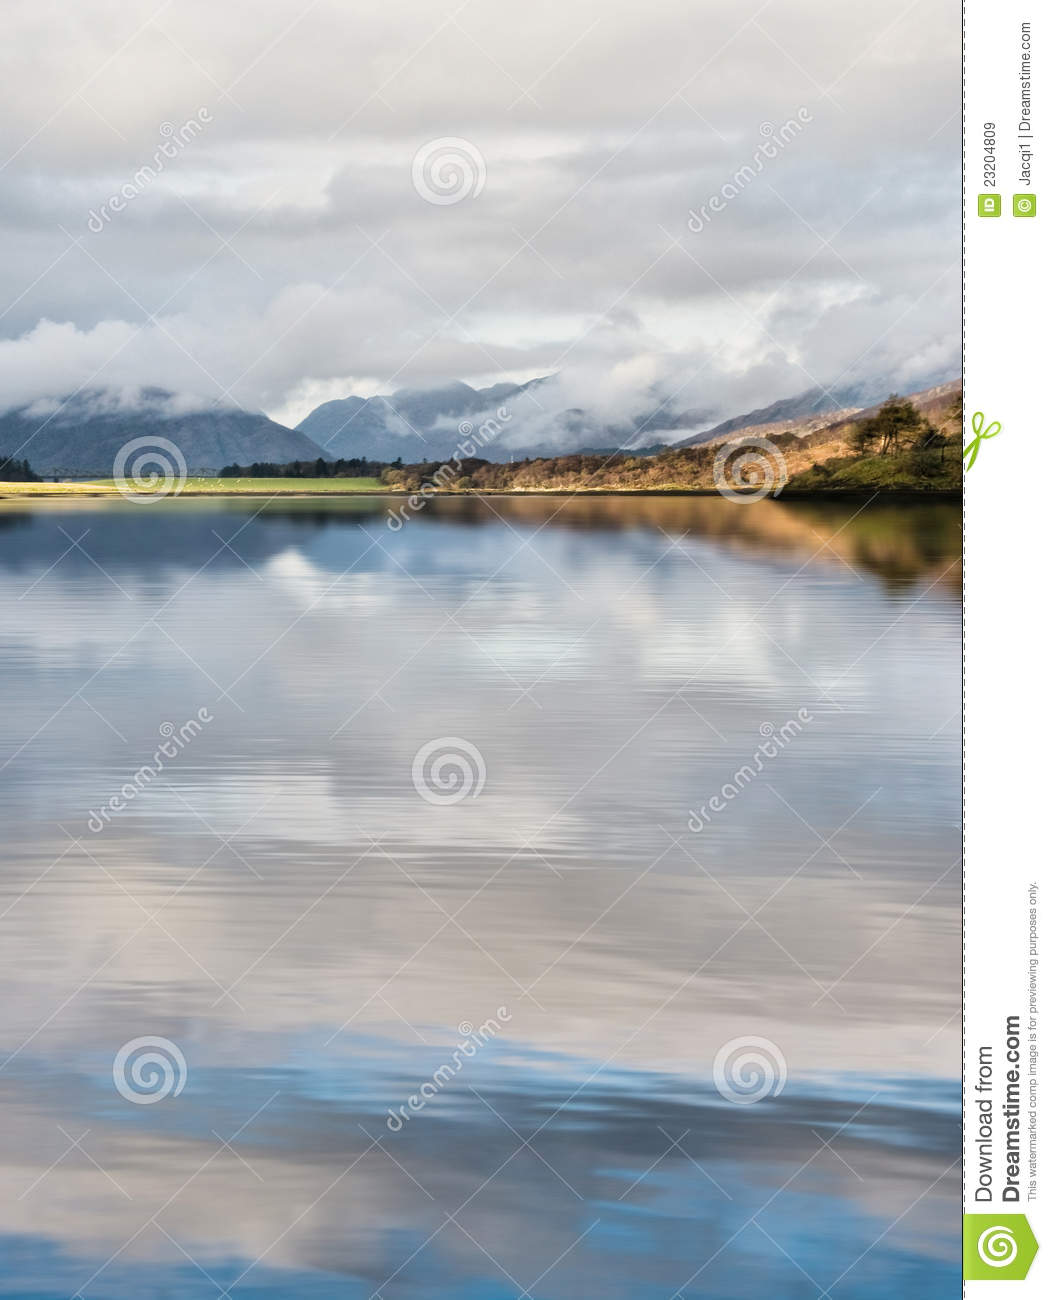 Scotch Mistiness stock image. Image of water, blue, peace